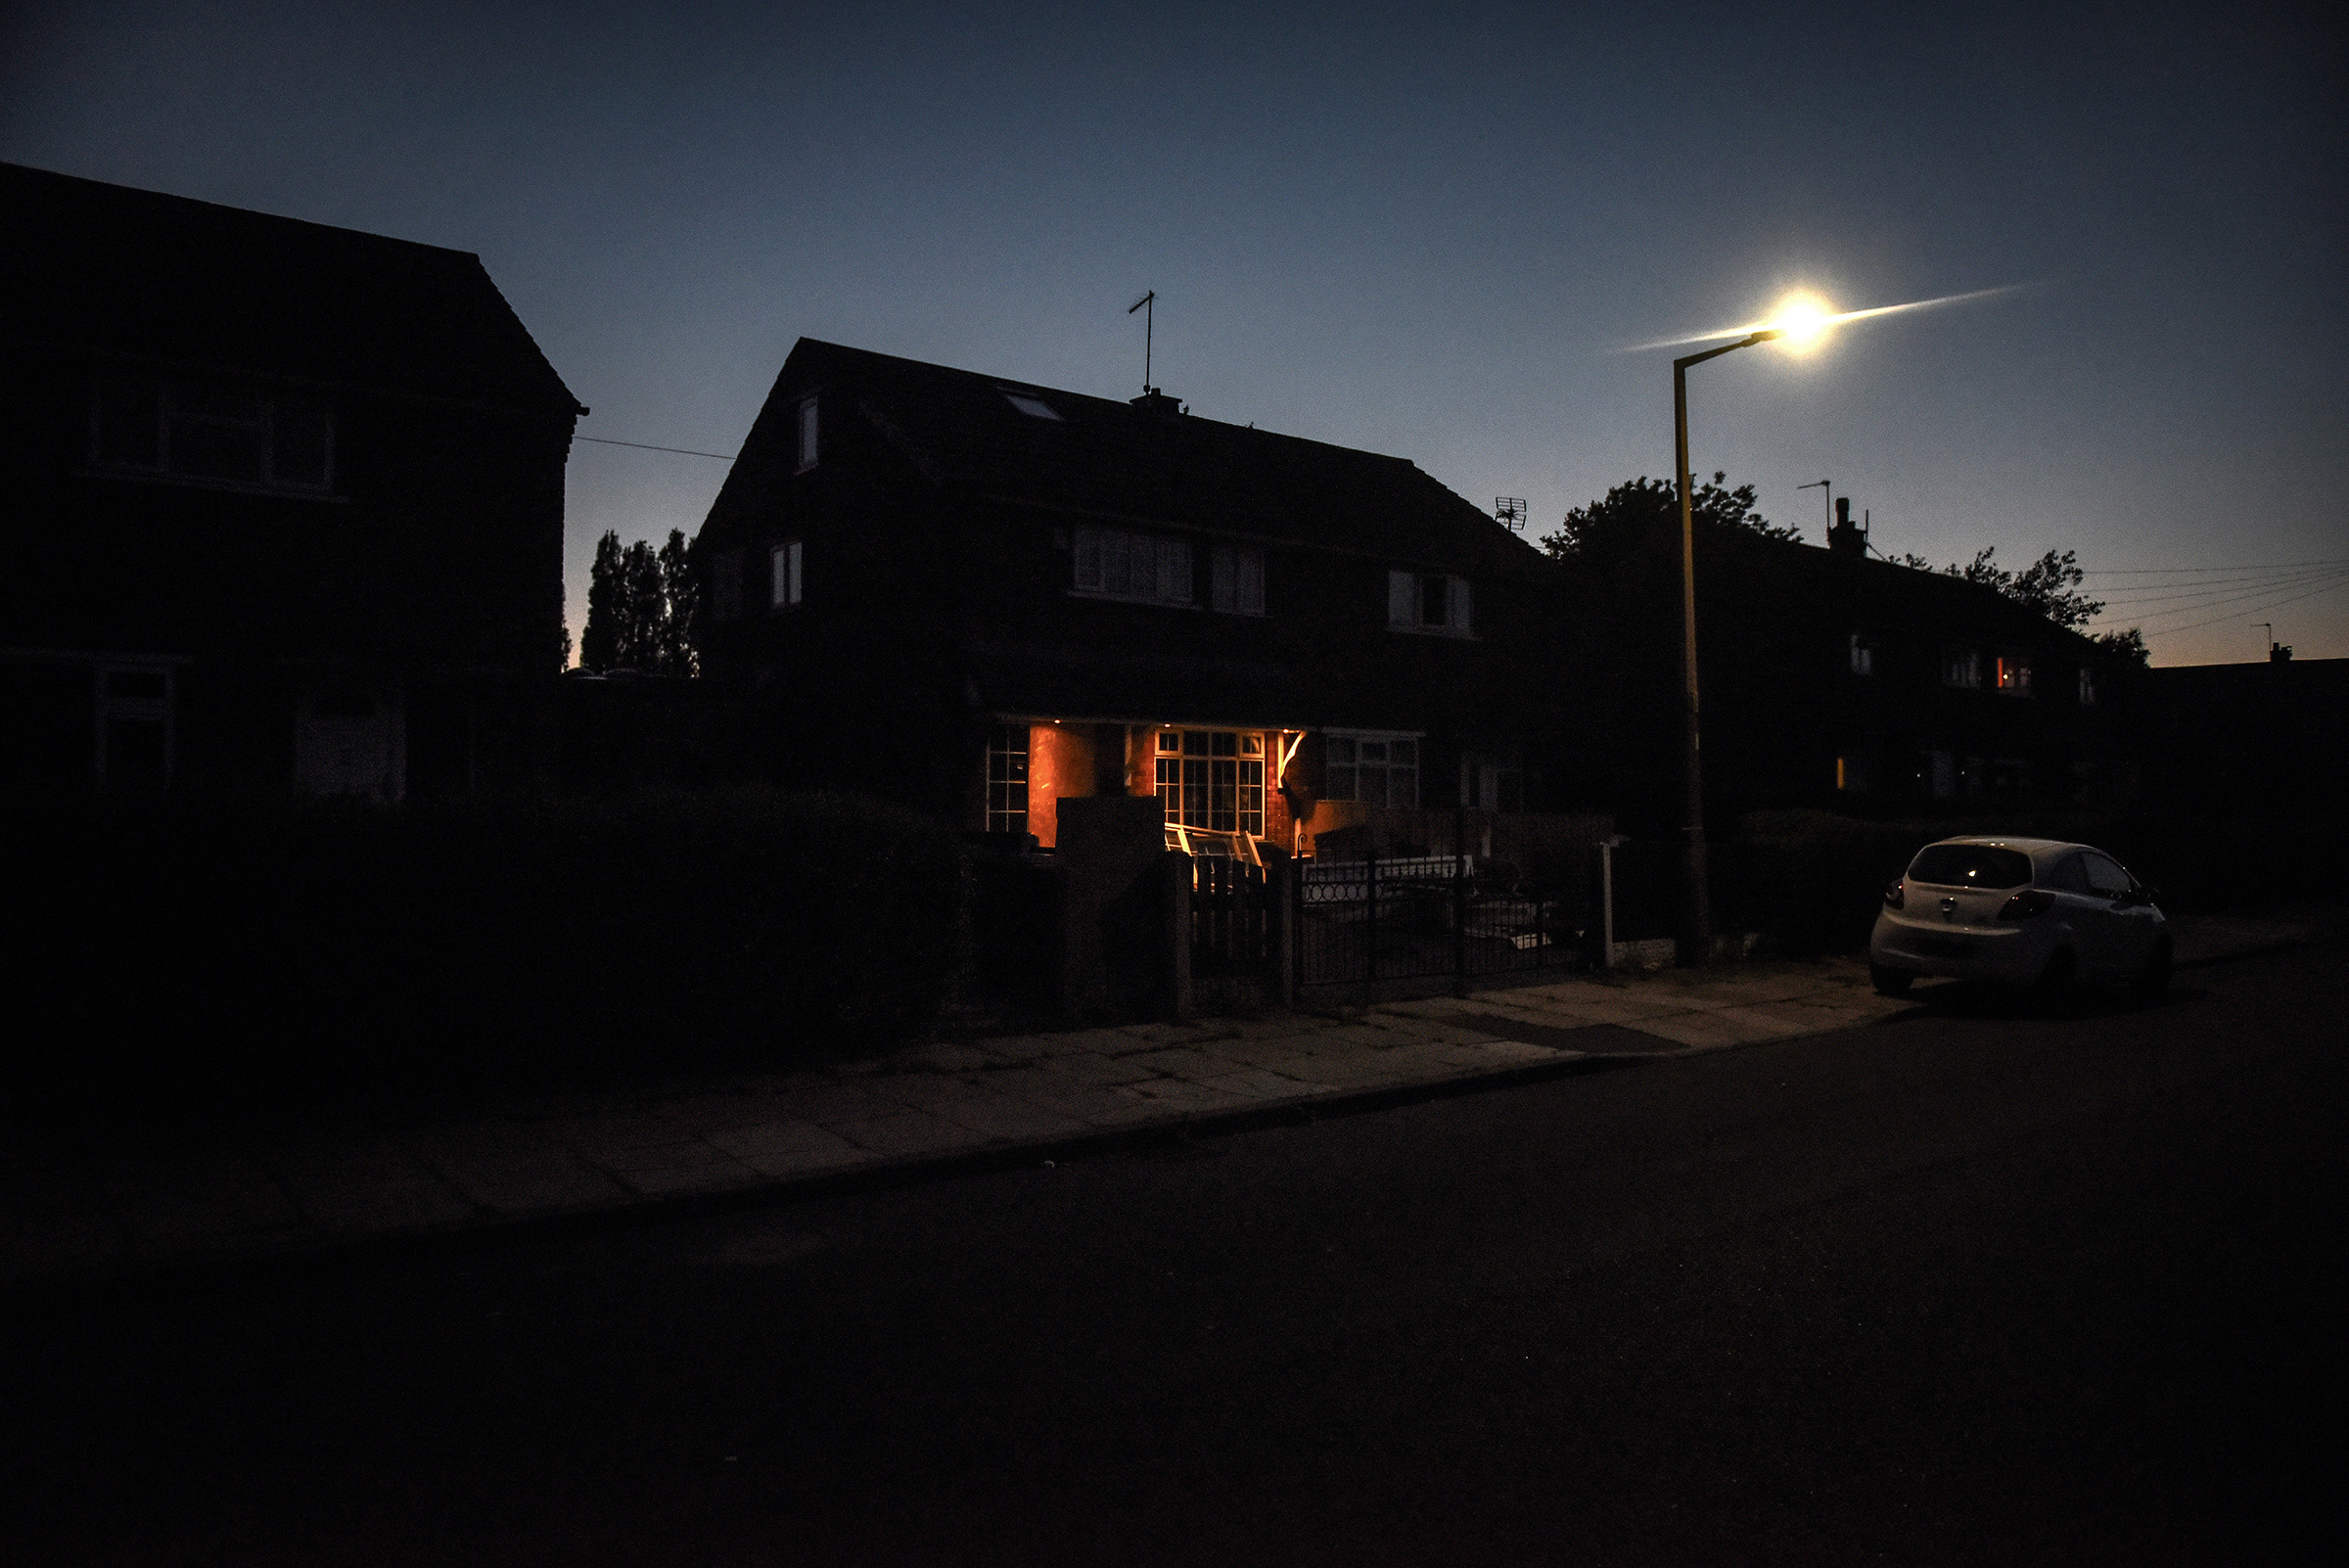 The house where Amy-Leanne Stringfellow, 26, was killed on June 5, in Balby, England, photographed on June 21, 2020.